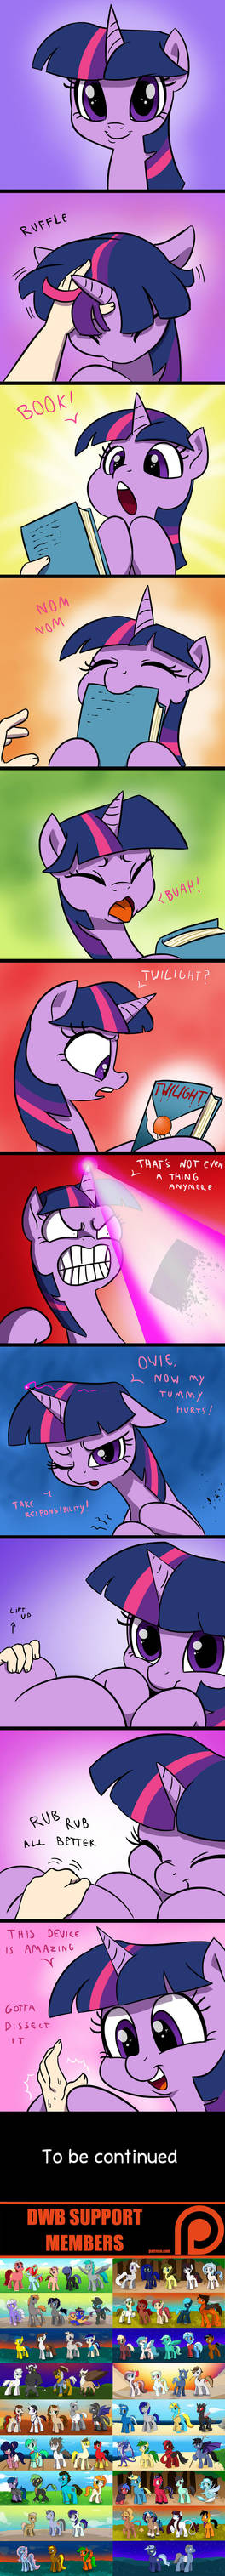 Twilight Simulator part 1 by doubleWbrothers